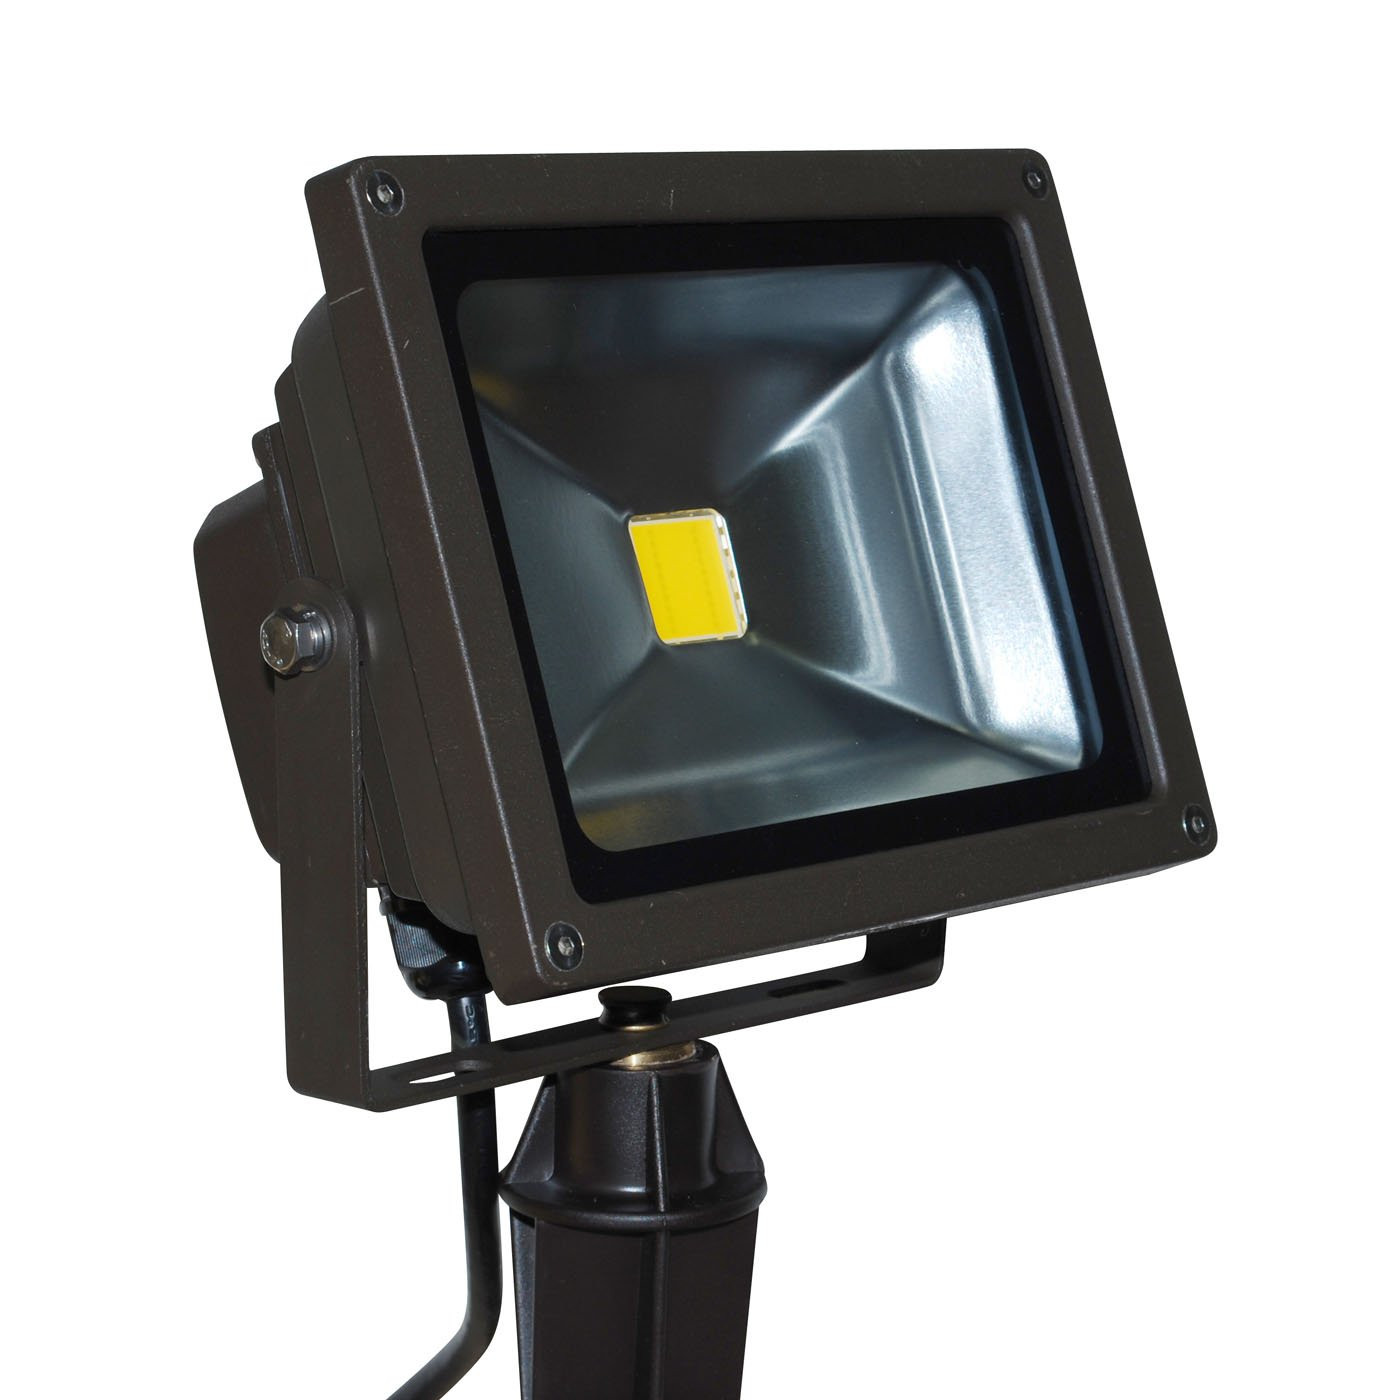 Best ideas about Led Outdoor Lights . Save or Pin Led Outdoor Flood Lights Now.